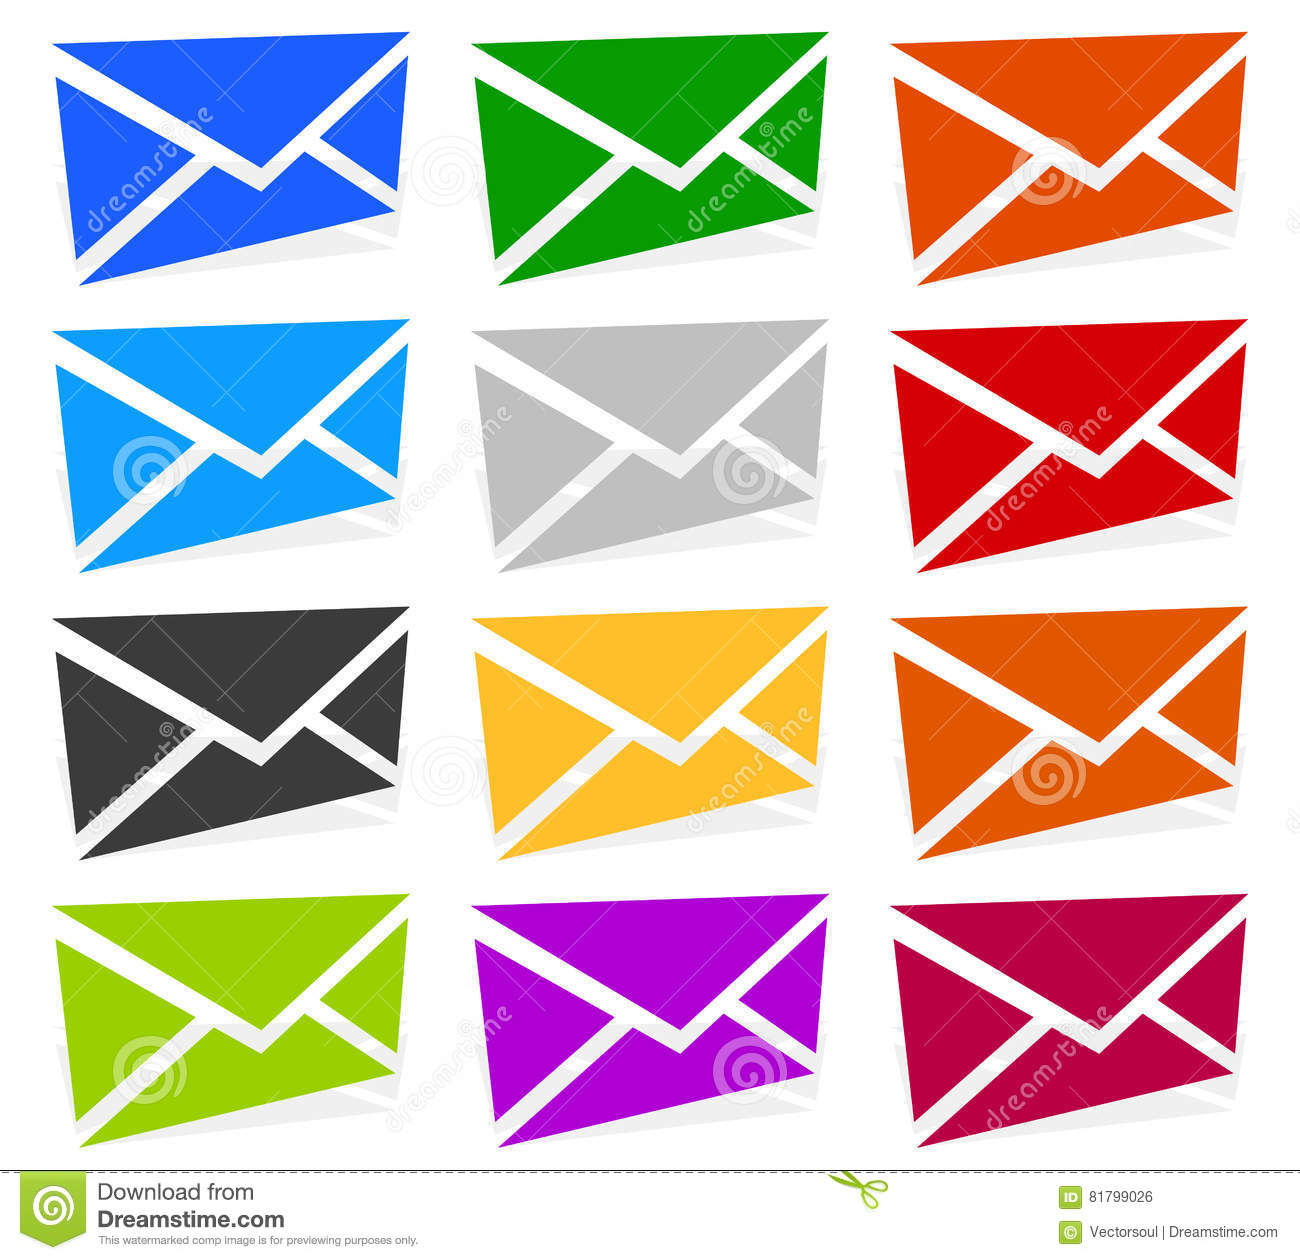 Envelope Symbols In 12 Colors As Contact Support Email Icons